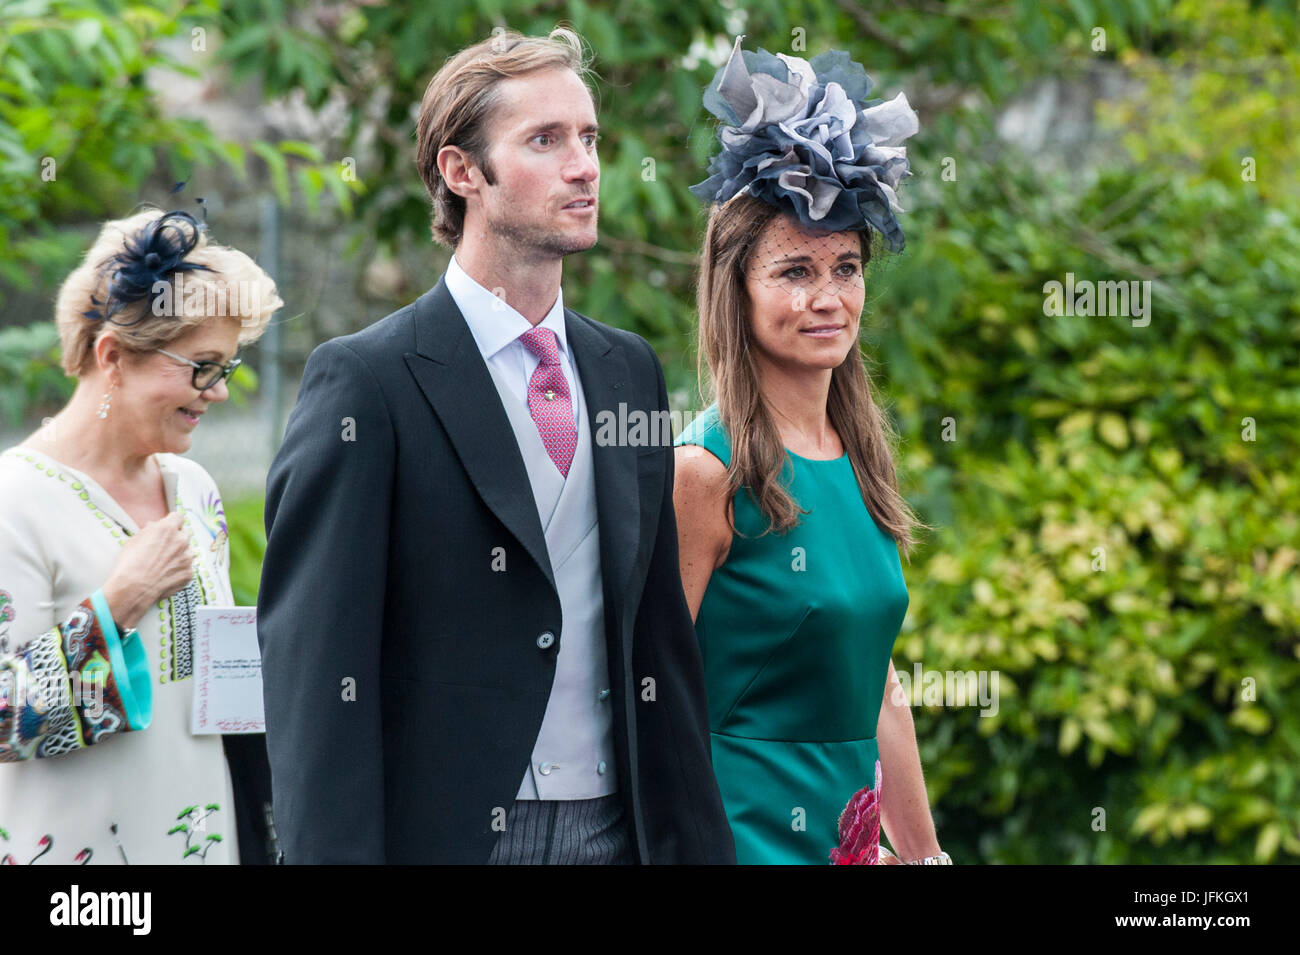 glengarriff-west-cork-ireland-1st-july-2017-pippa-middleton-and-her-JFKGX1.jpg